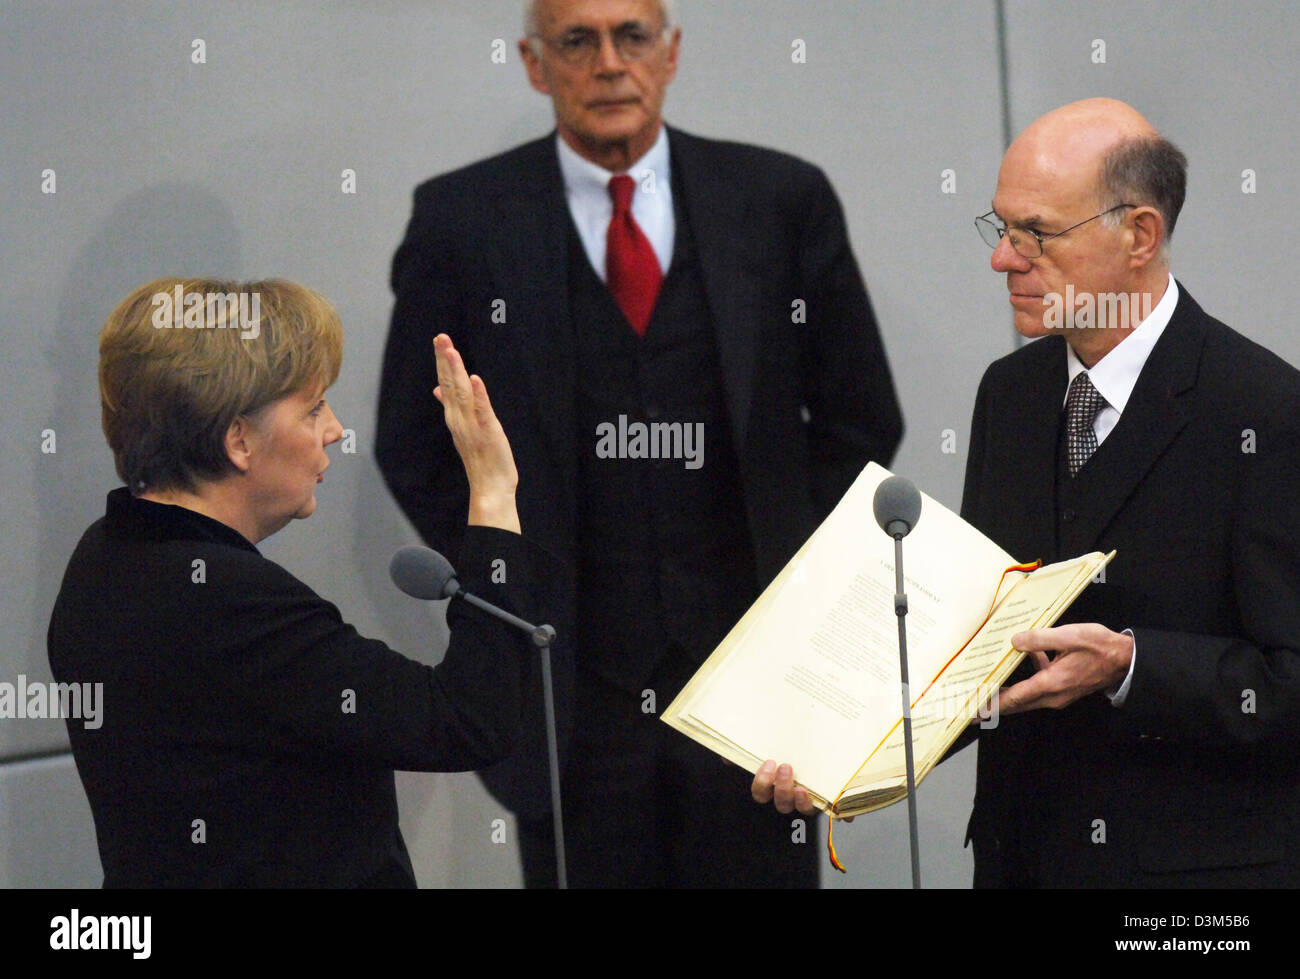 (dpa) - New elect German Chancellor Angela Merkel (L) takes the oath of office to President of the Bundestag, Norbert Lammert (R), as Wolfgang Zeh, director of the Bundestag looks on in Berlin, Germany, Tuesday 22 November 2005. Merkel of the conservative Christian Democratic Union (CDU) was elected with the majority votes of the parliament confirming her as the first female chance Stock Photo